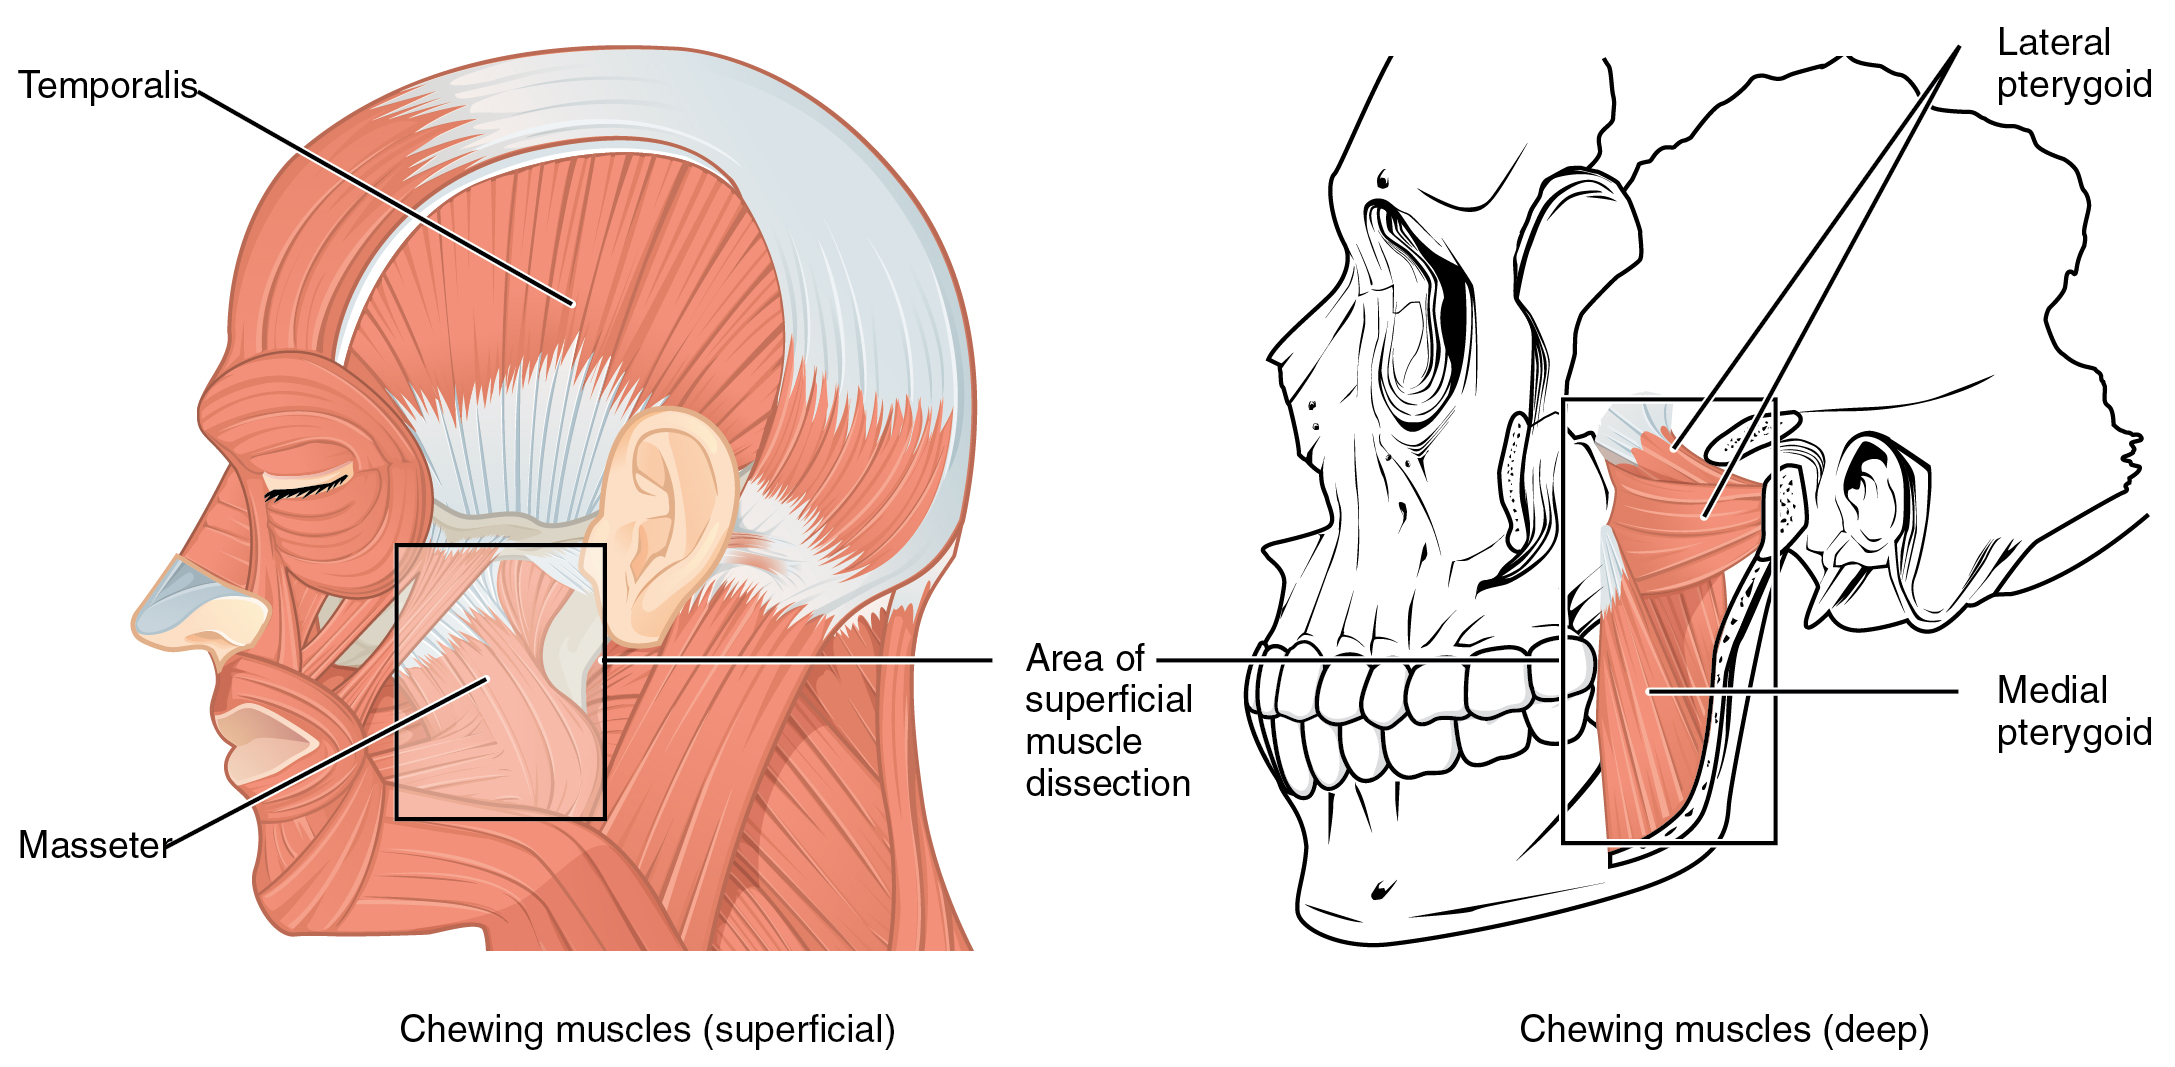 The left panel of this figure shows the superficial chewing muscles in face, and the right panel shows the deep chewing muscles.